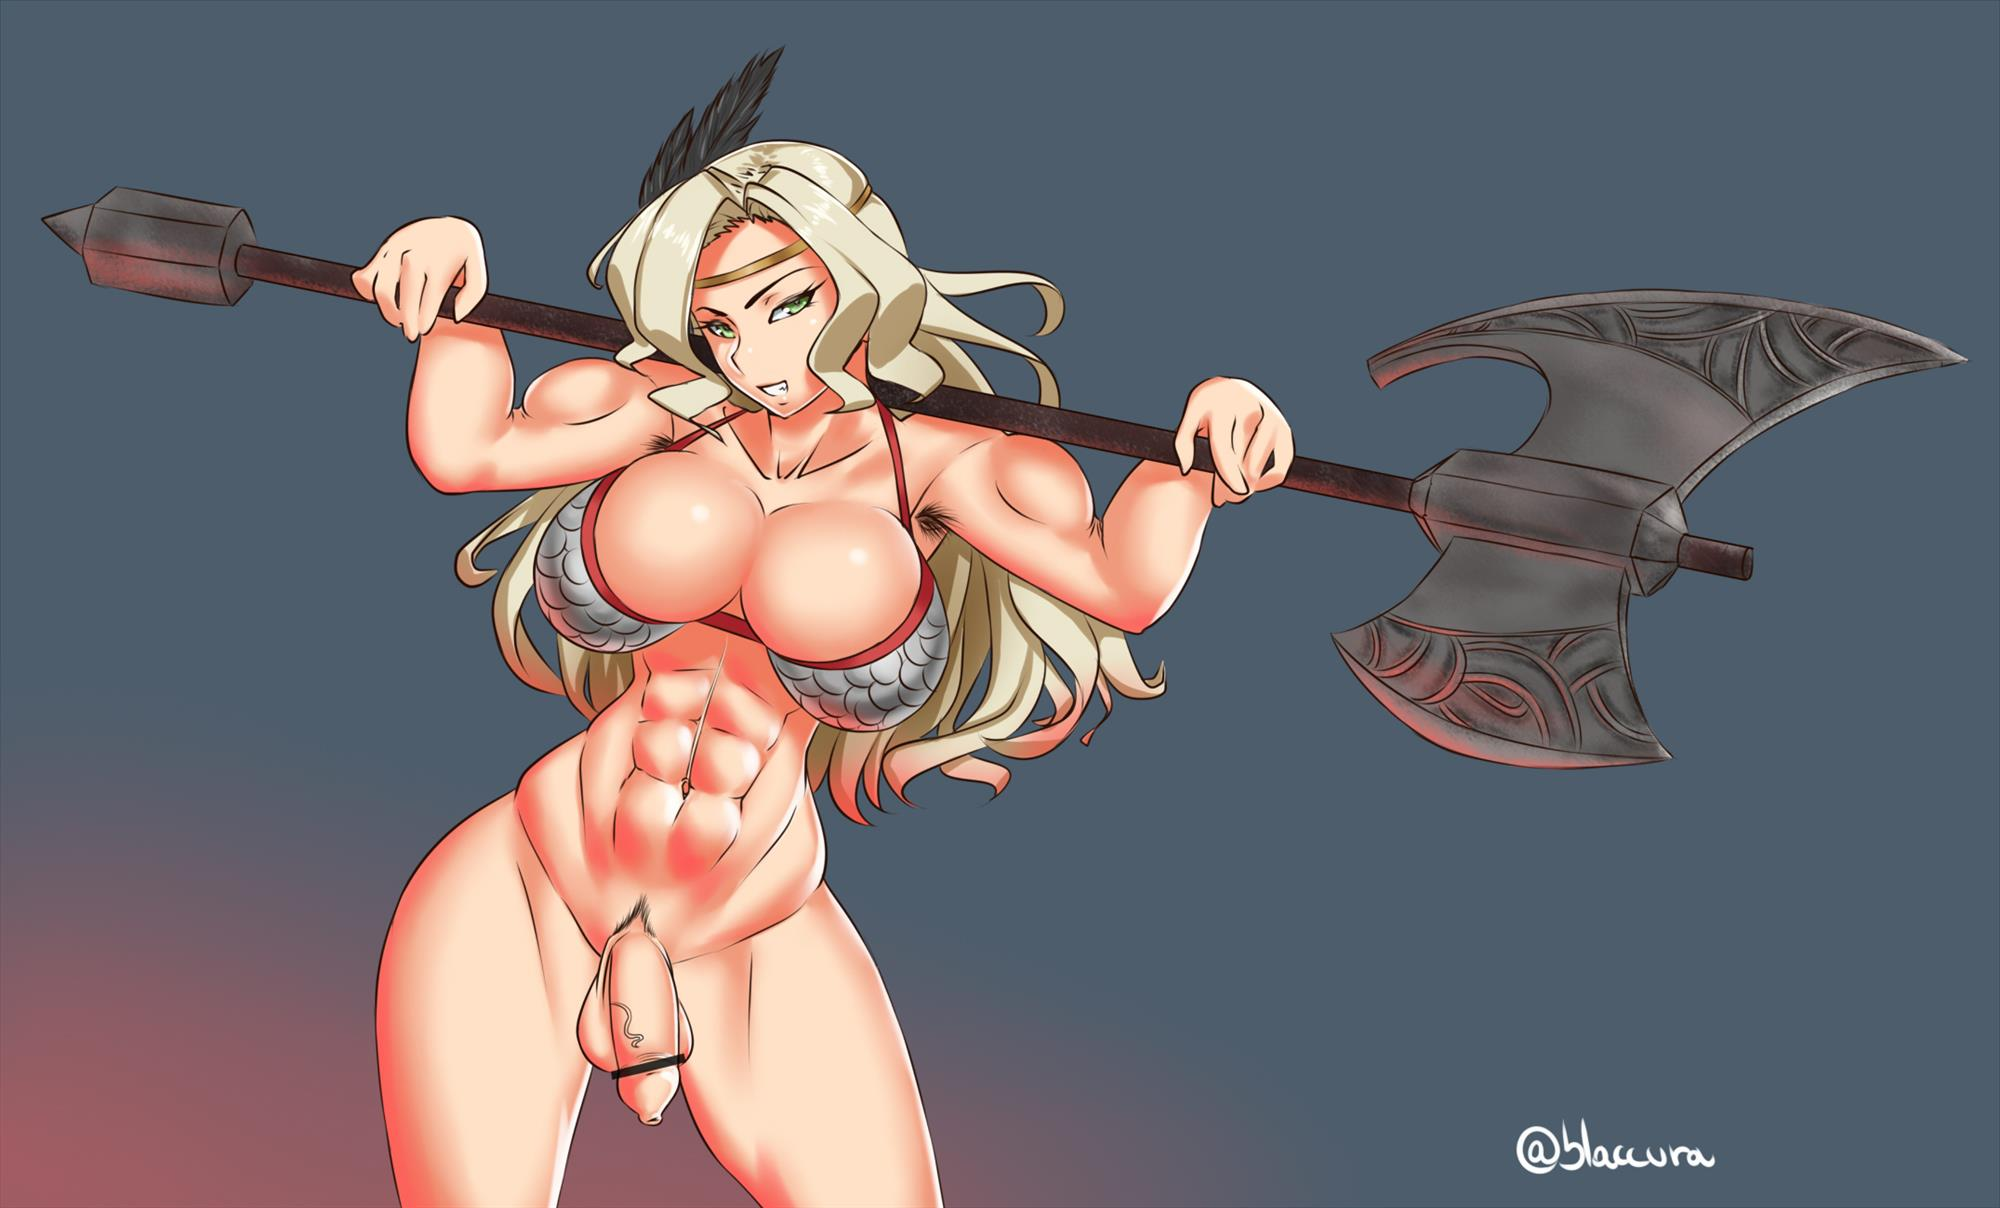 Muscular Amazon posing with her halberd nude